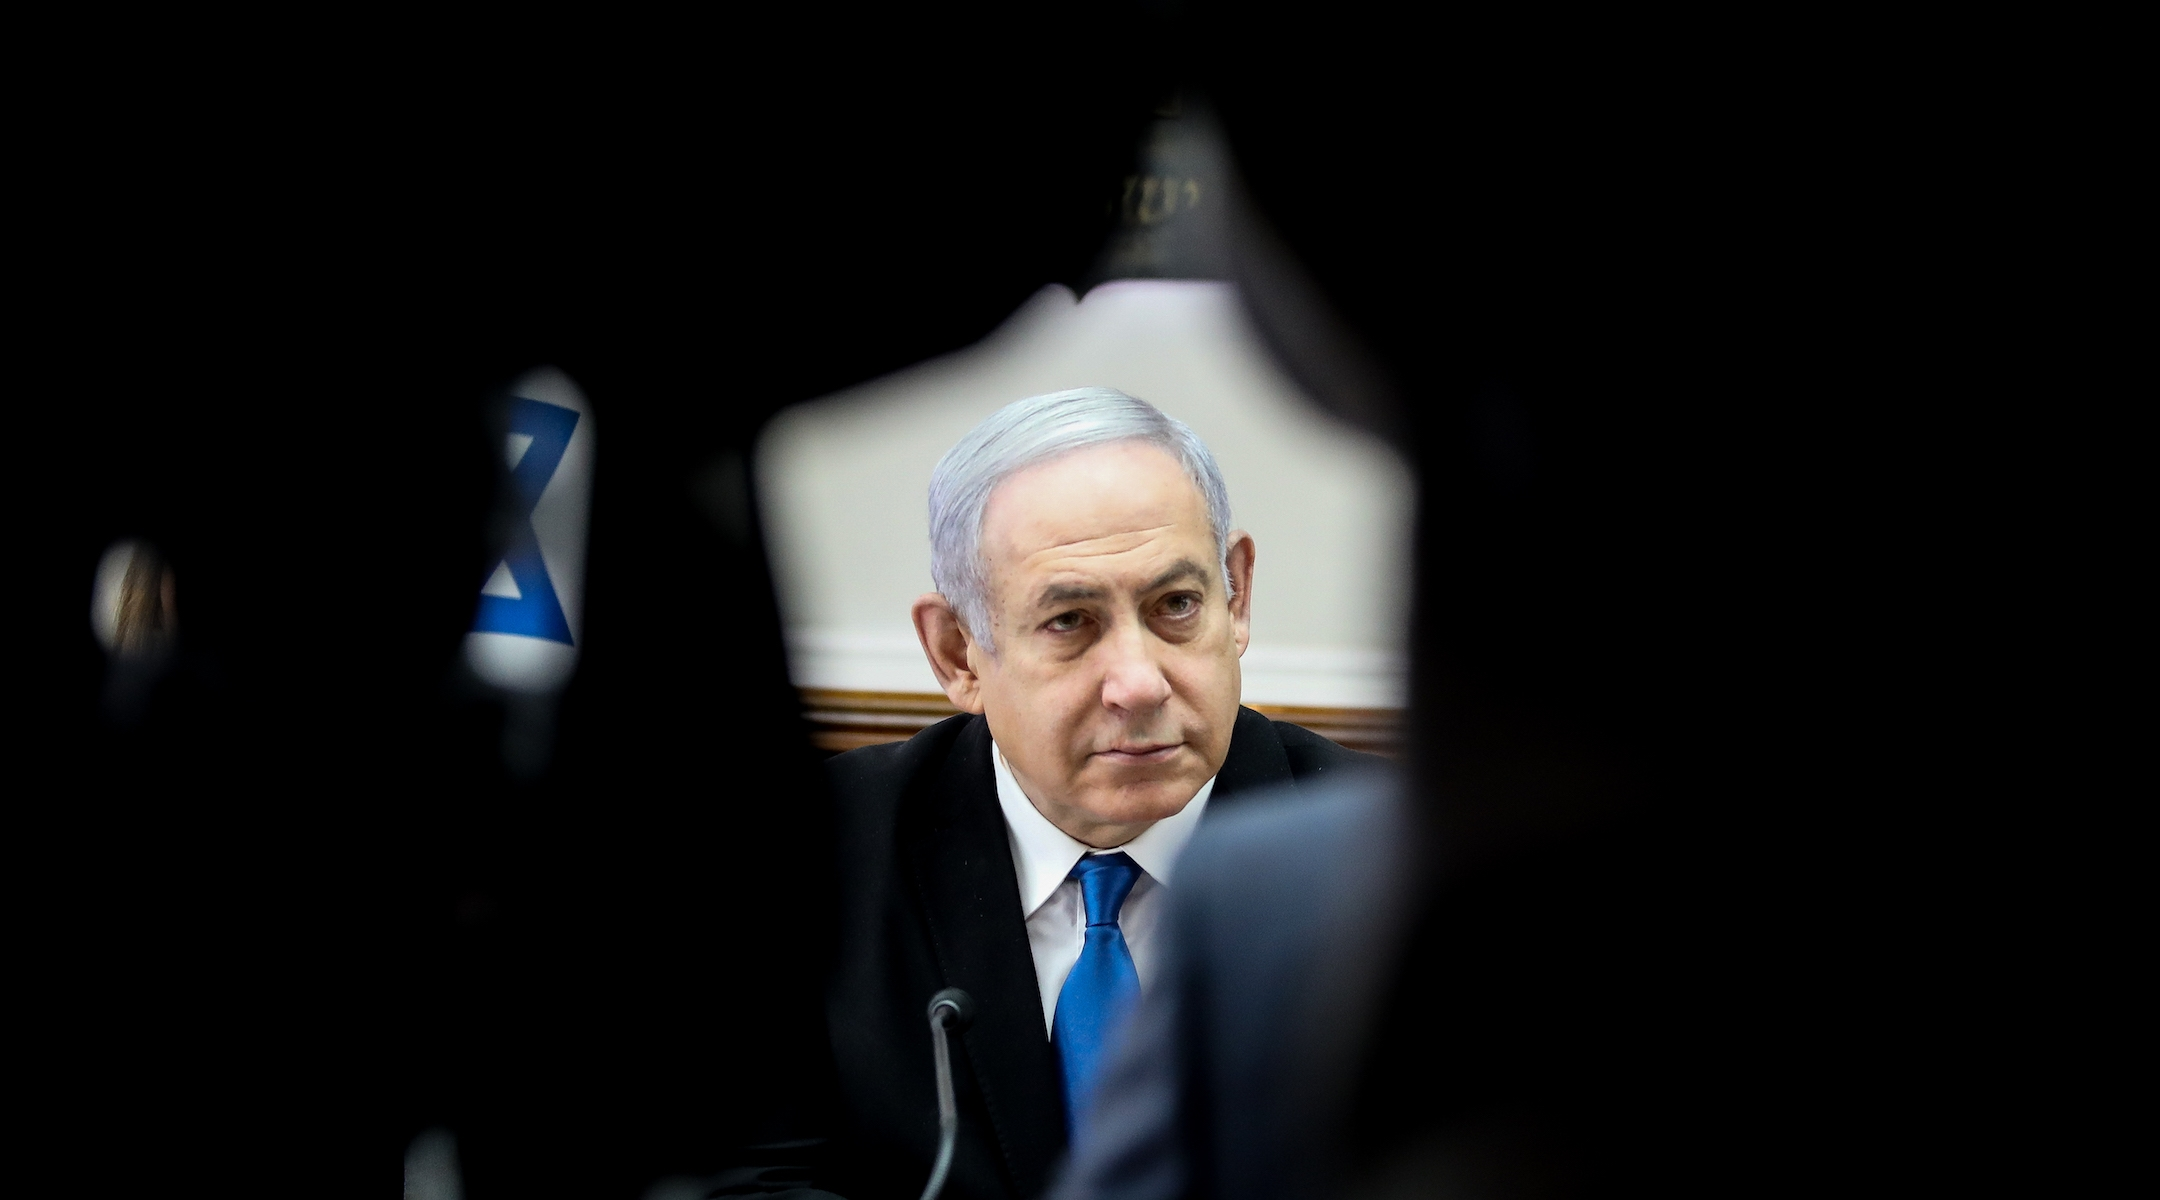 HBO is developing a series called 'Bibi' about Benjamin Netanyahu